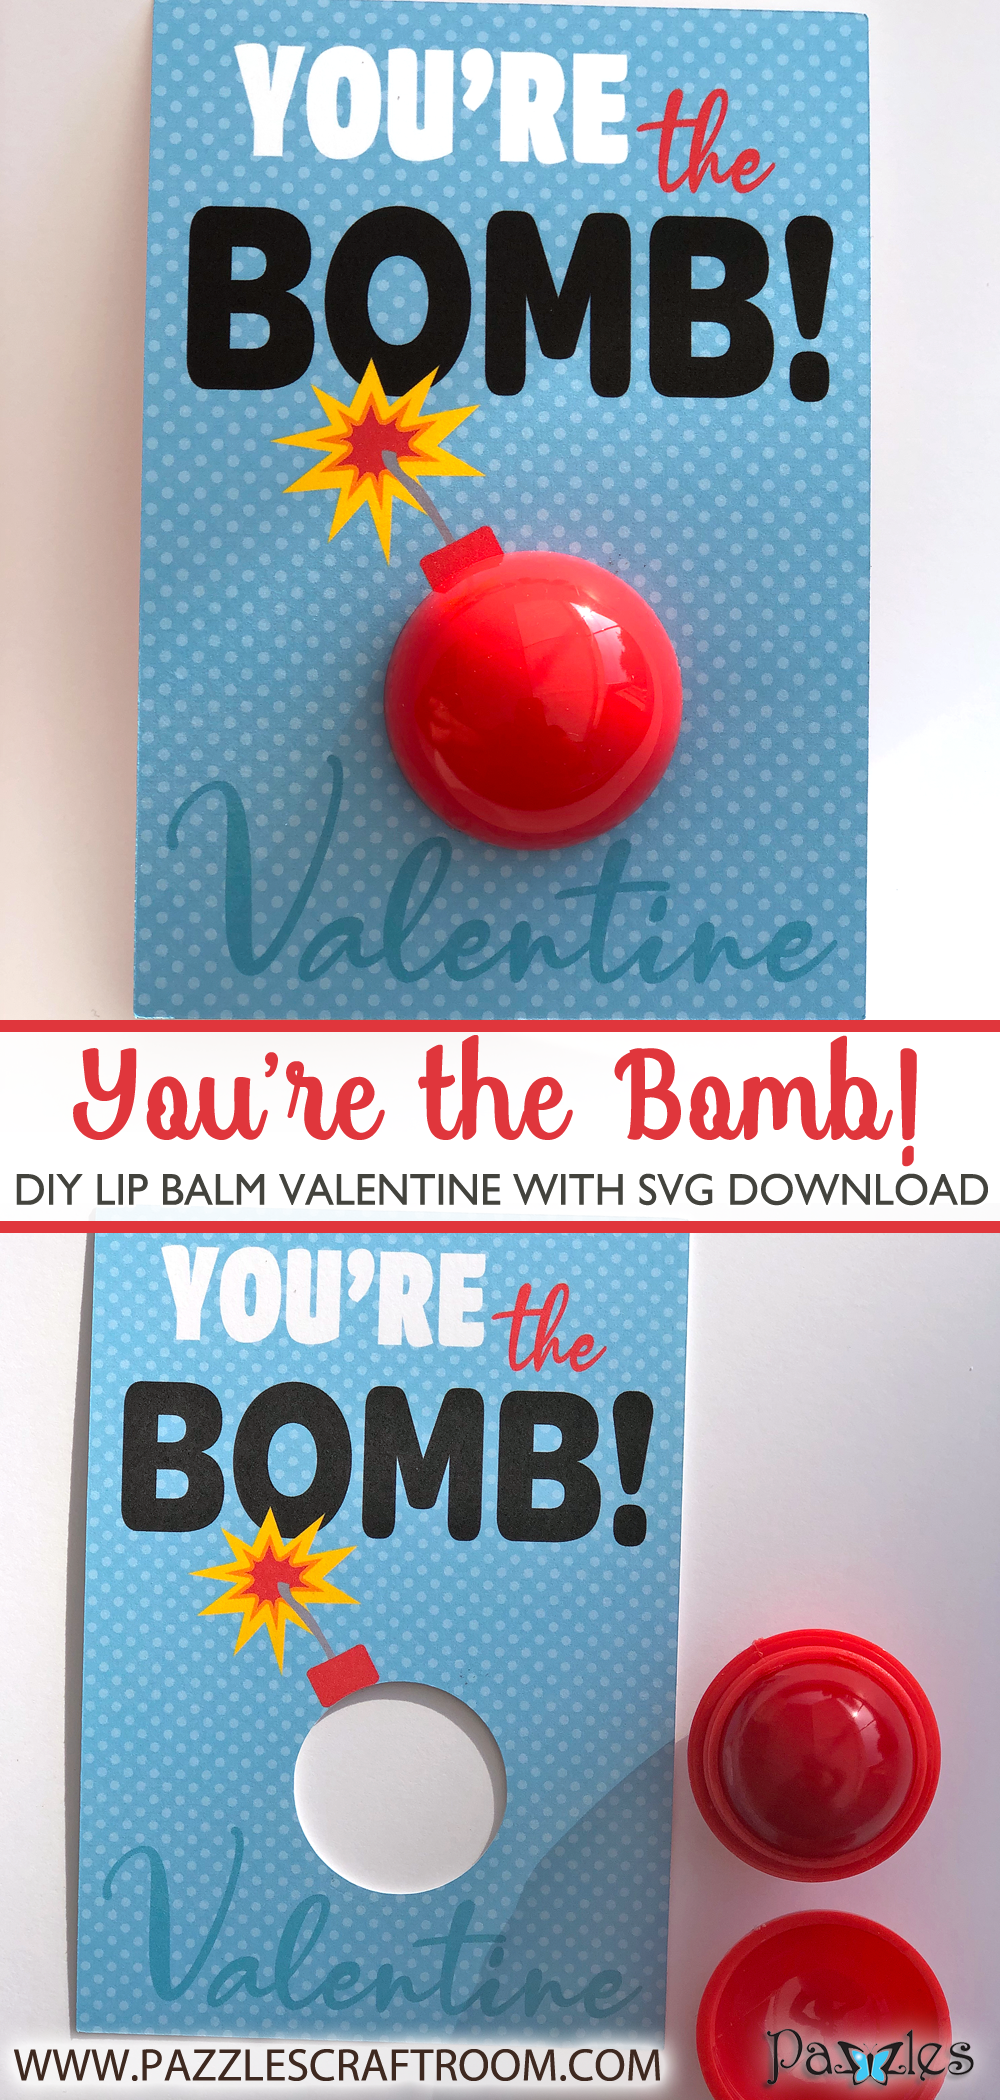 Pazzles DIY You're the Bomb Valentine Lip Balm with instant SVG download. Compatible with all major electronic cutters including Pazzles Inspiration, Cricut, and Silhouette Cameo. Design by Alma Cervantes.